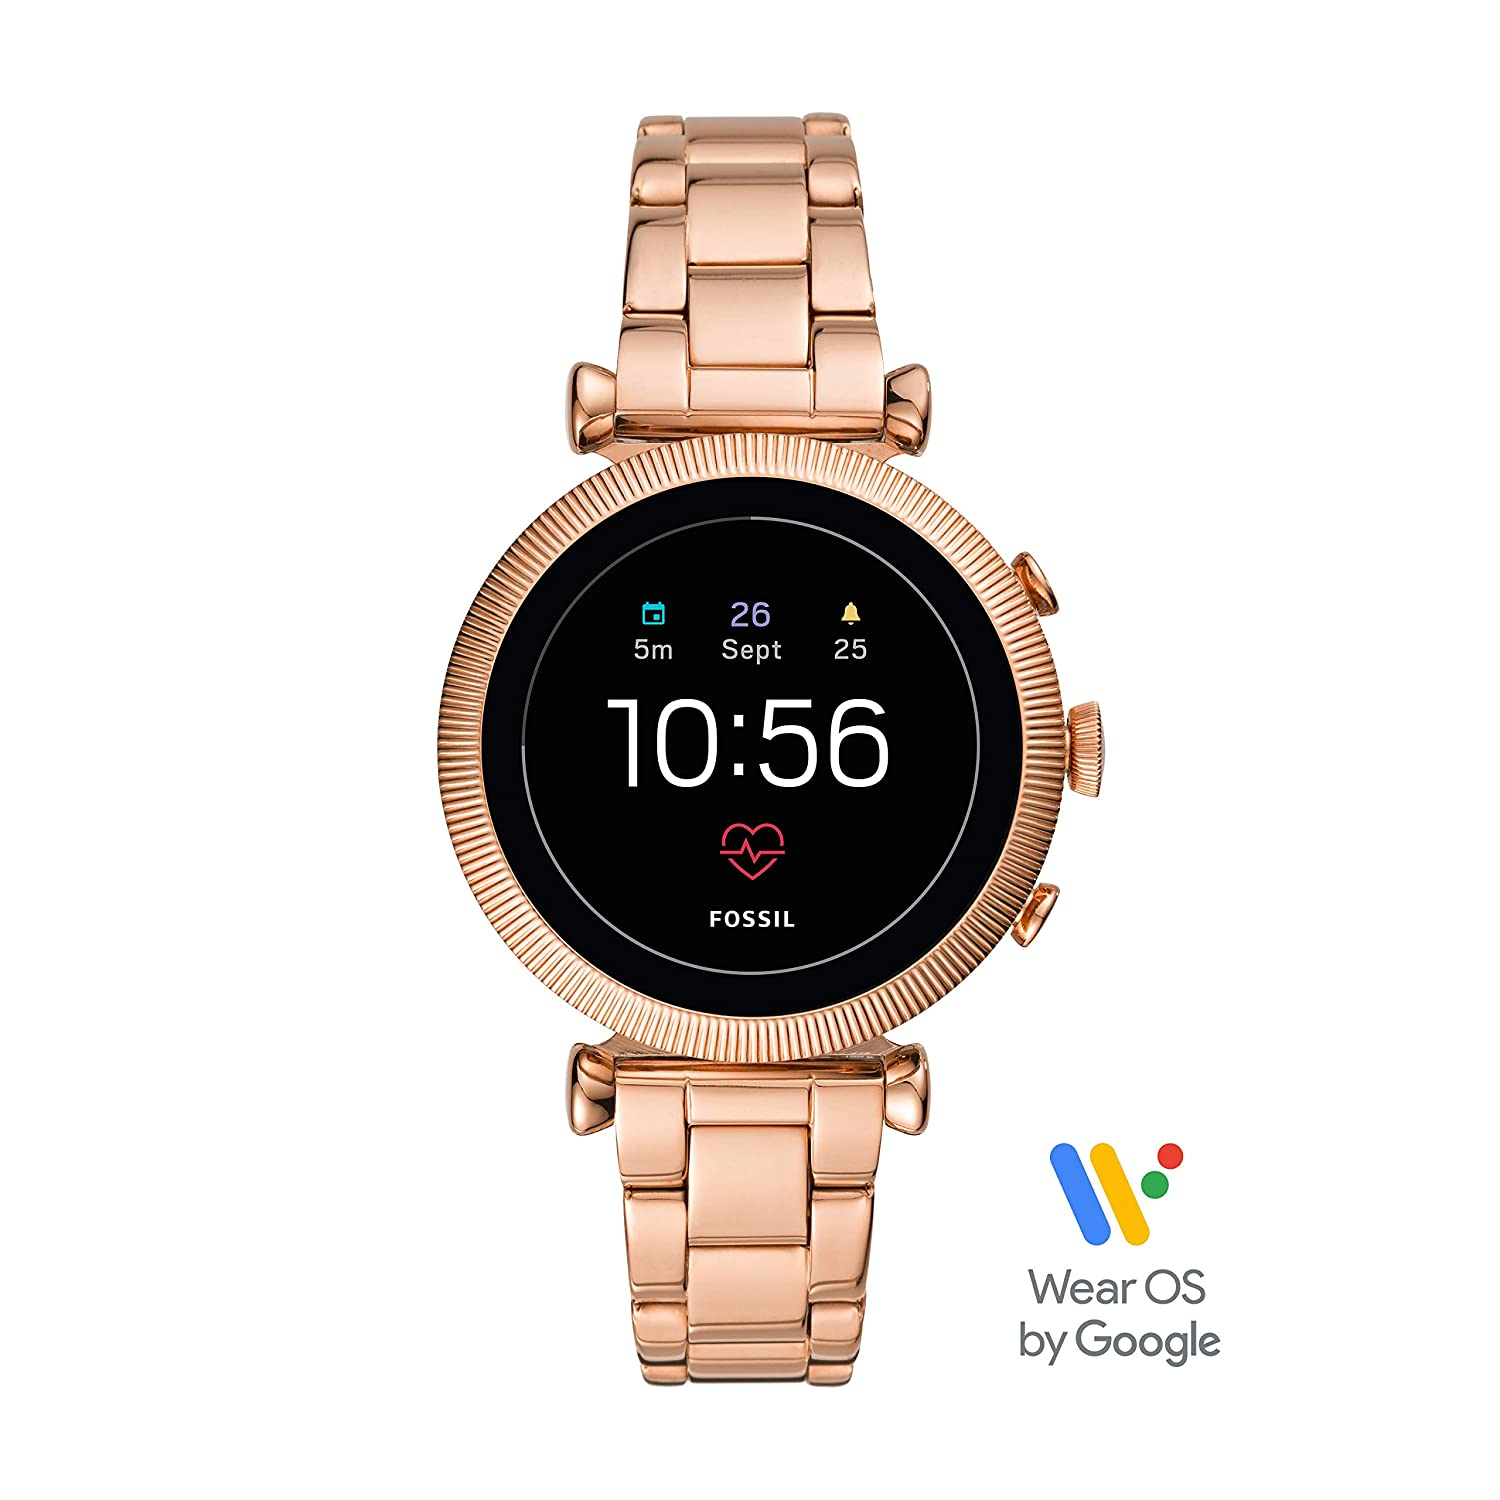 Fossil Womens Gen 4 Sloan HR Stainless Steel Touchscreen Smartwatch with Heart Rate, GPS, NFC, and Smartphone Notifications